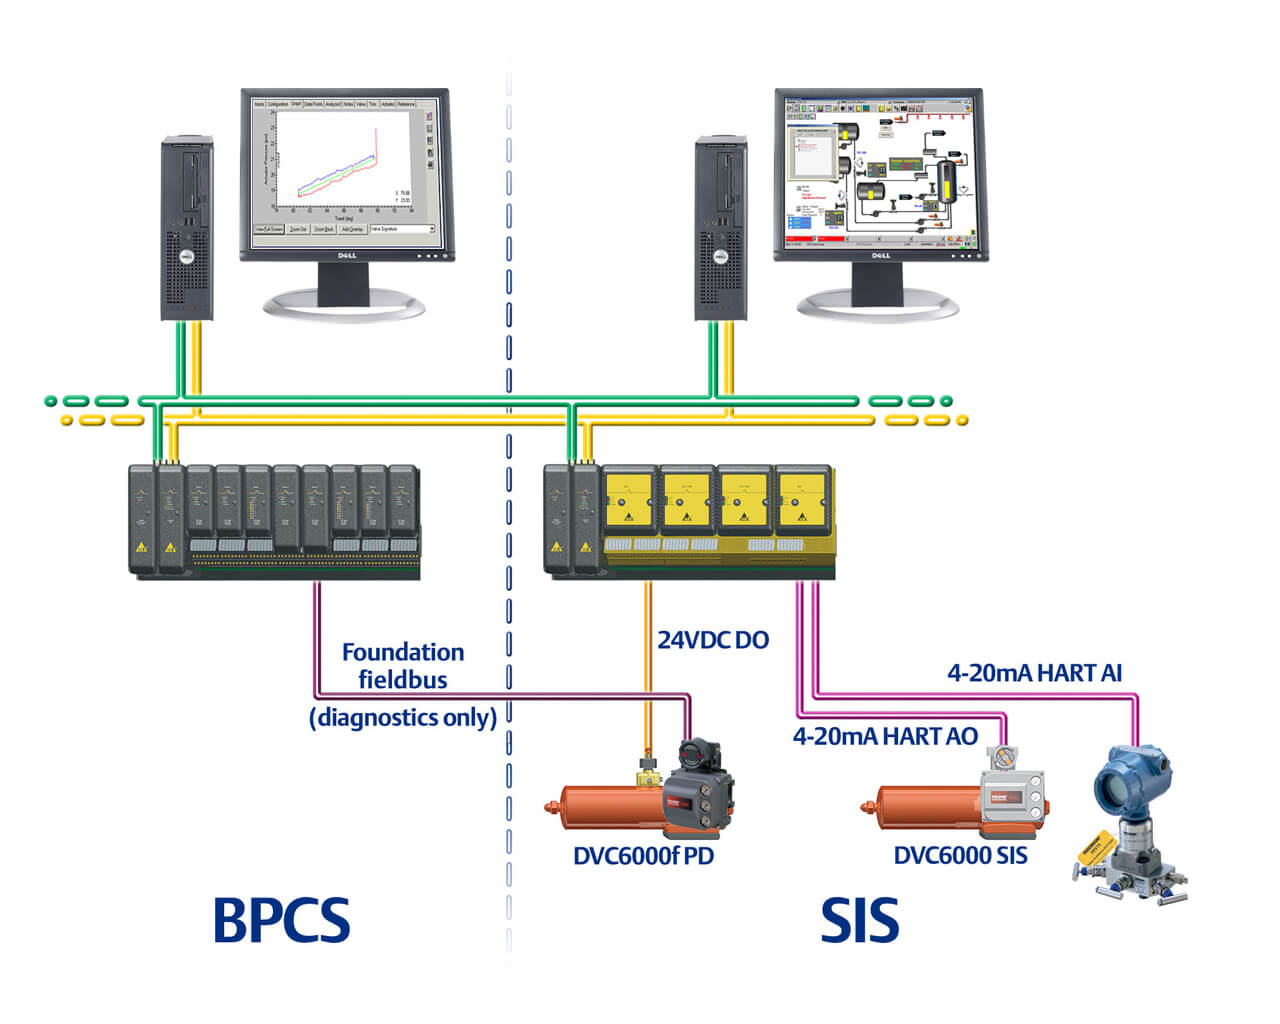 dvc6200 sis wiring diagram main breaker panel solutions for and foundation fieldbus emerson